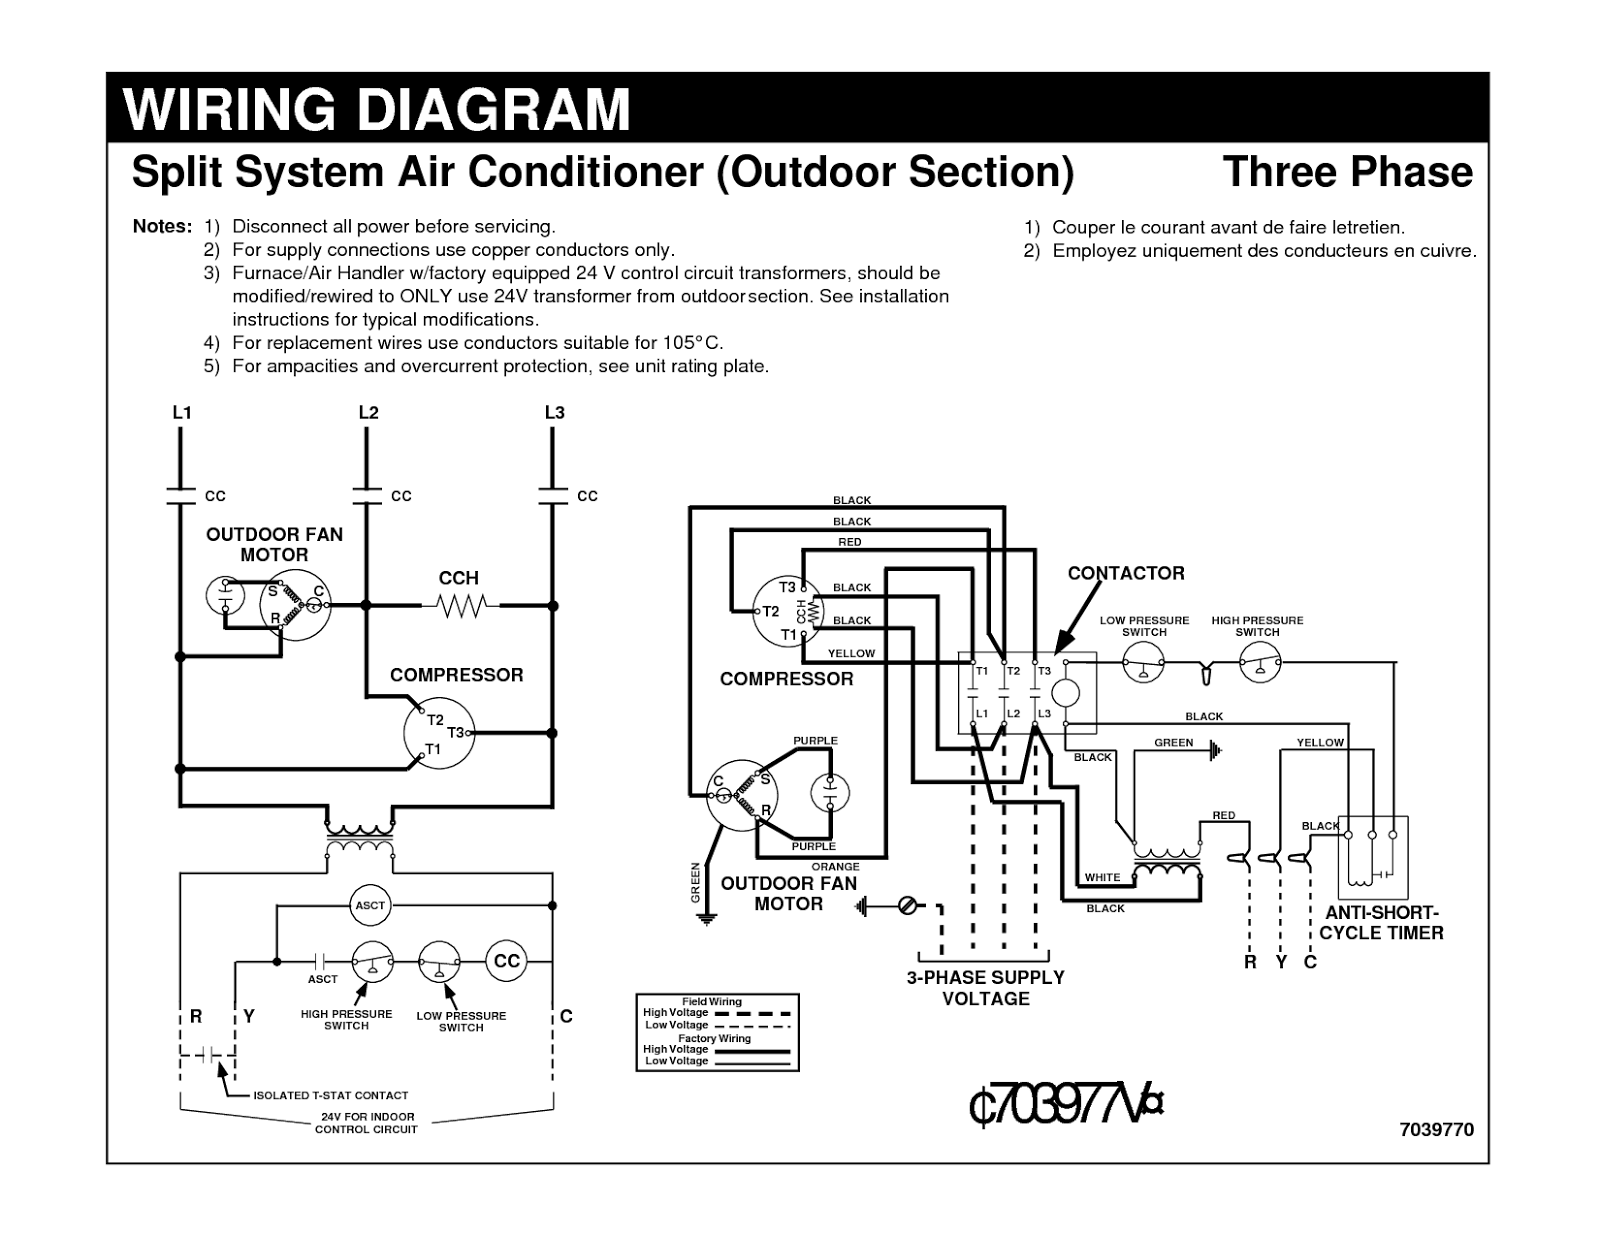 stulz air conditioning wiring diagram